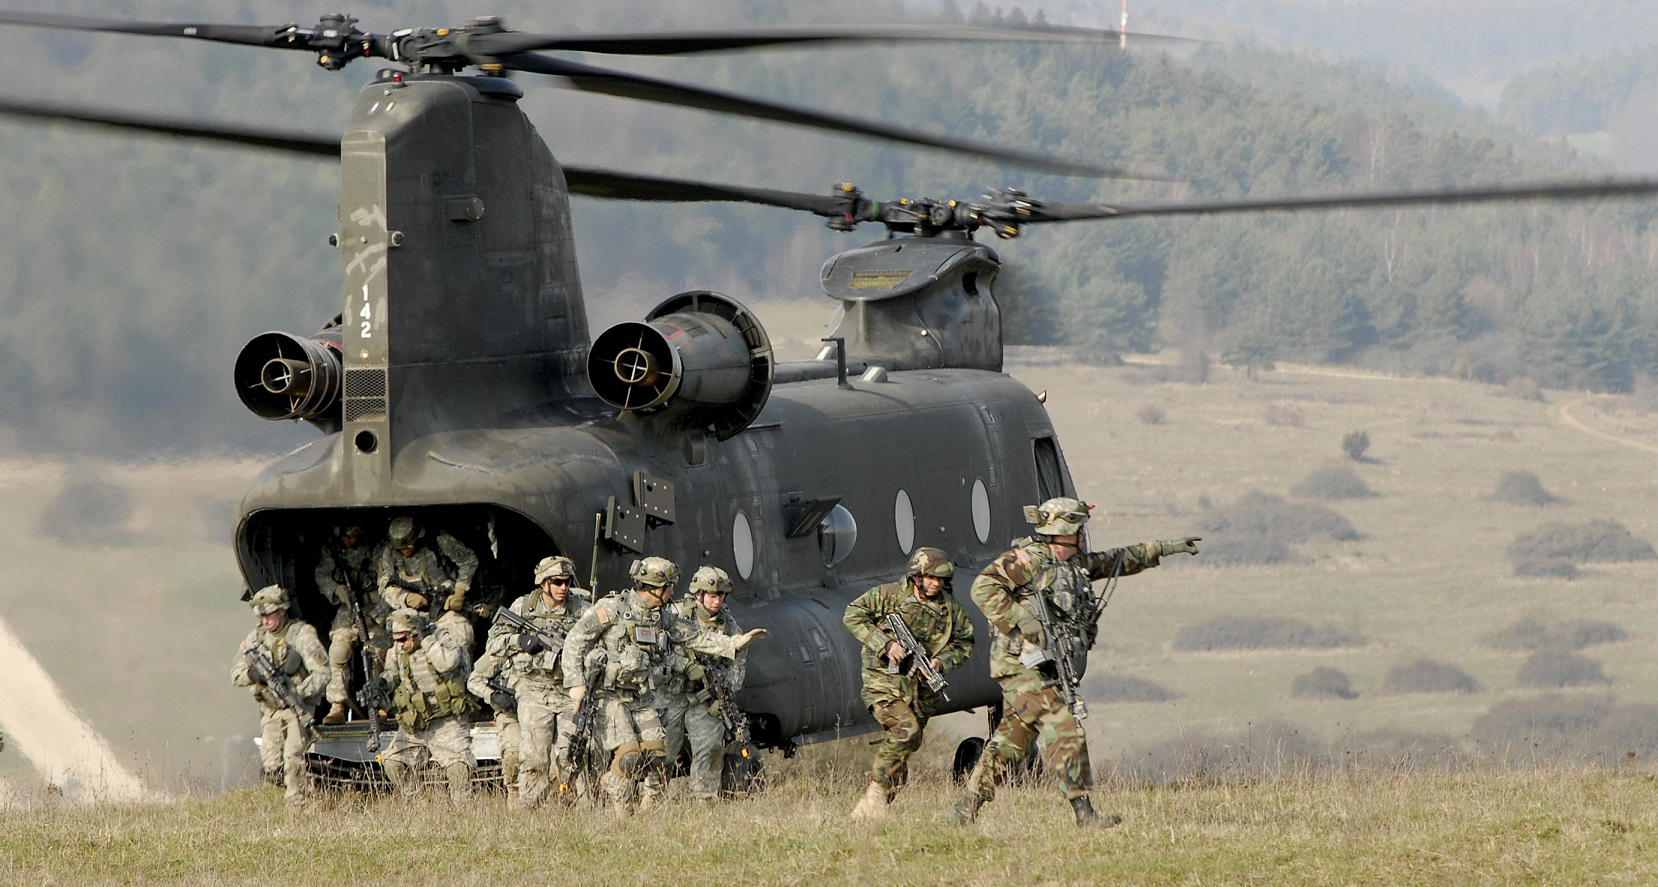 U.S. Army Soldiers from 173rd Airborne Brigade Combat Team dismount a CH-47 Chinook helicopter during training at the Joint Multi-National Training Center in Hohenfels, Germany, March 31, 2007, for their upcoming deployment to Afghanistan. The Soldiers refined their skills in mounted and dismounted patrols, small unit tactics, military operations in urban terrain, counter-improved explosive devices and long range marksmanship.  (U.S. Army photo by Gary L. Kieffer) (Released)